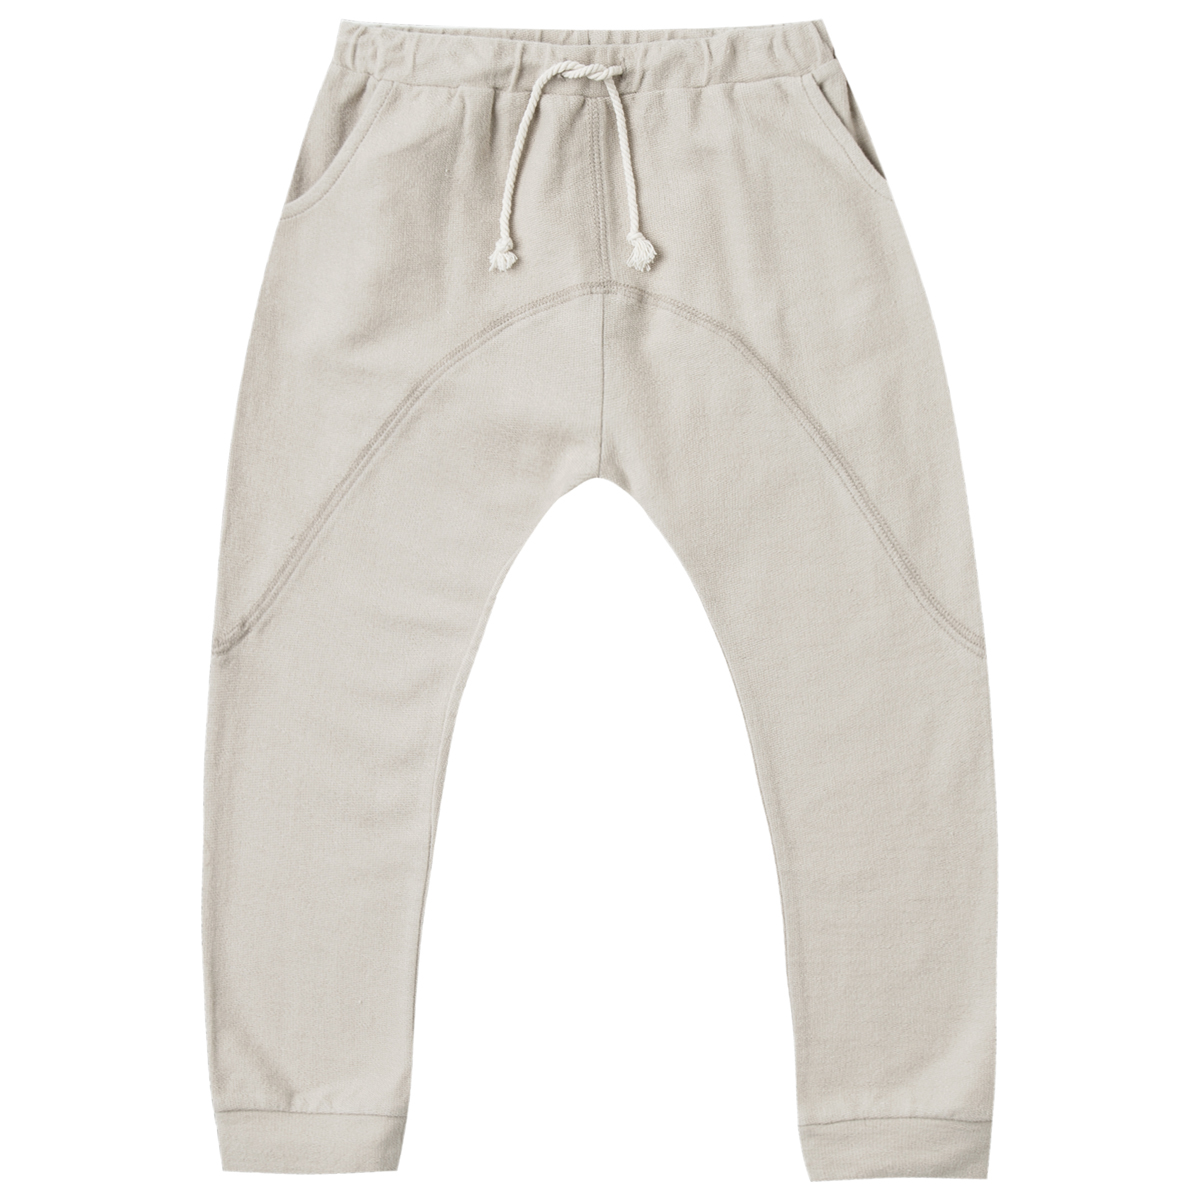 Rylee+Cru SS19 James Pant Cloud